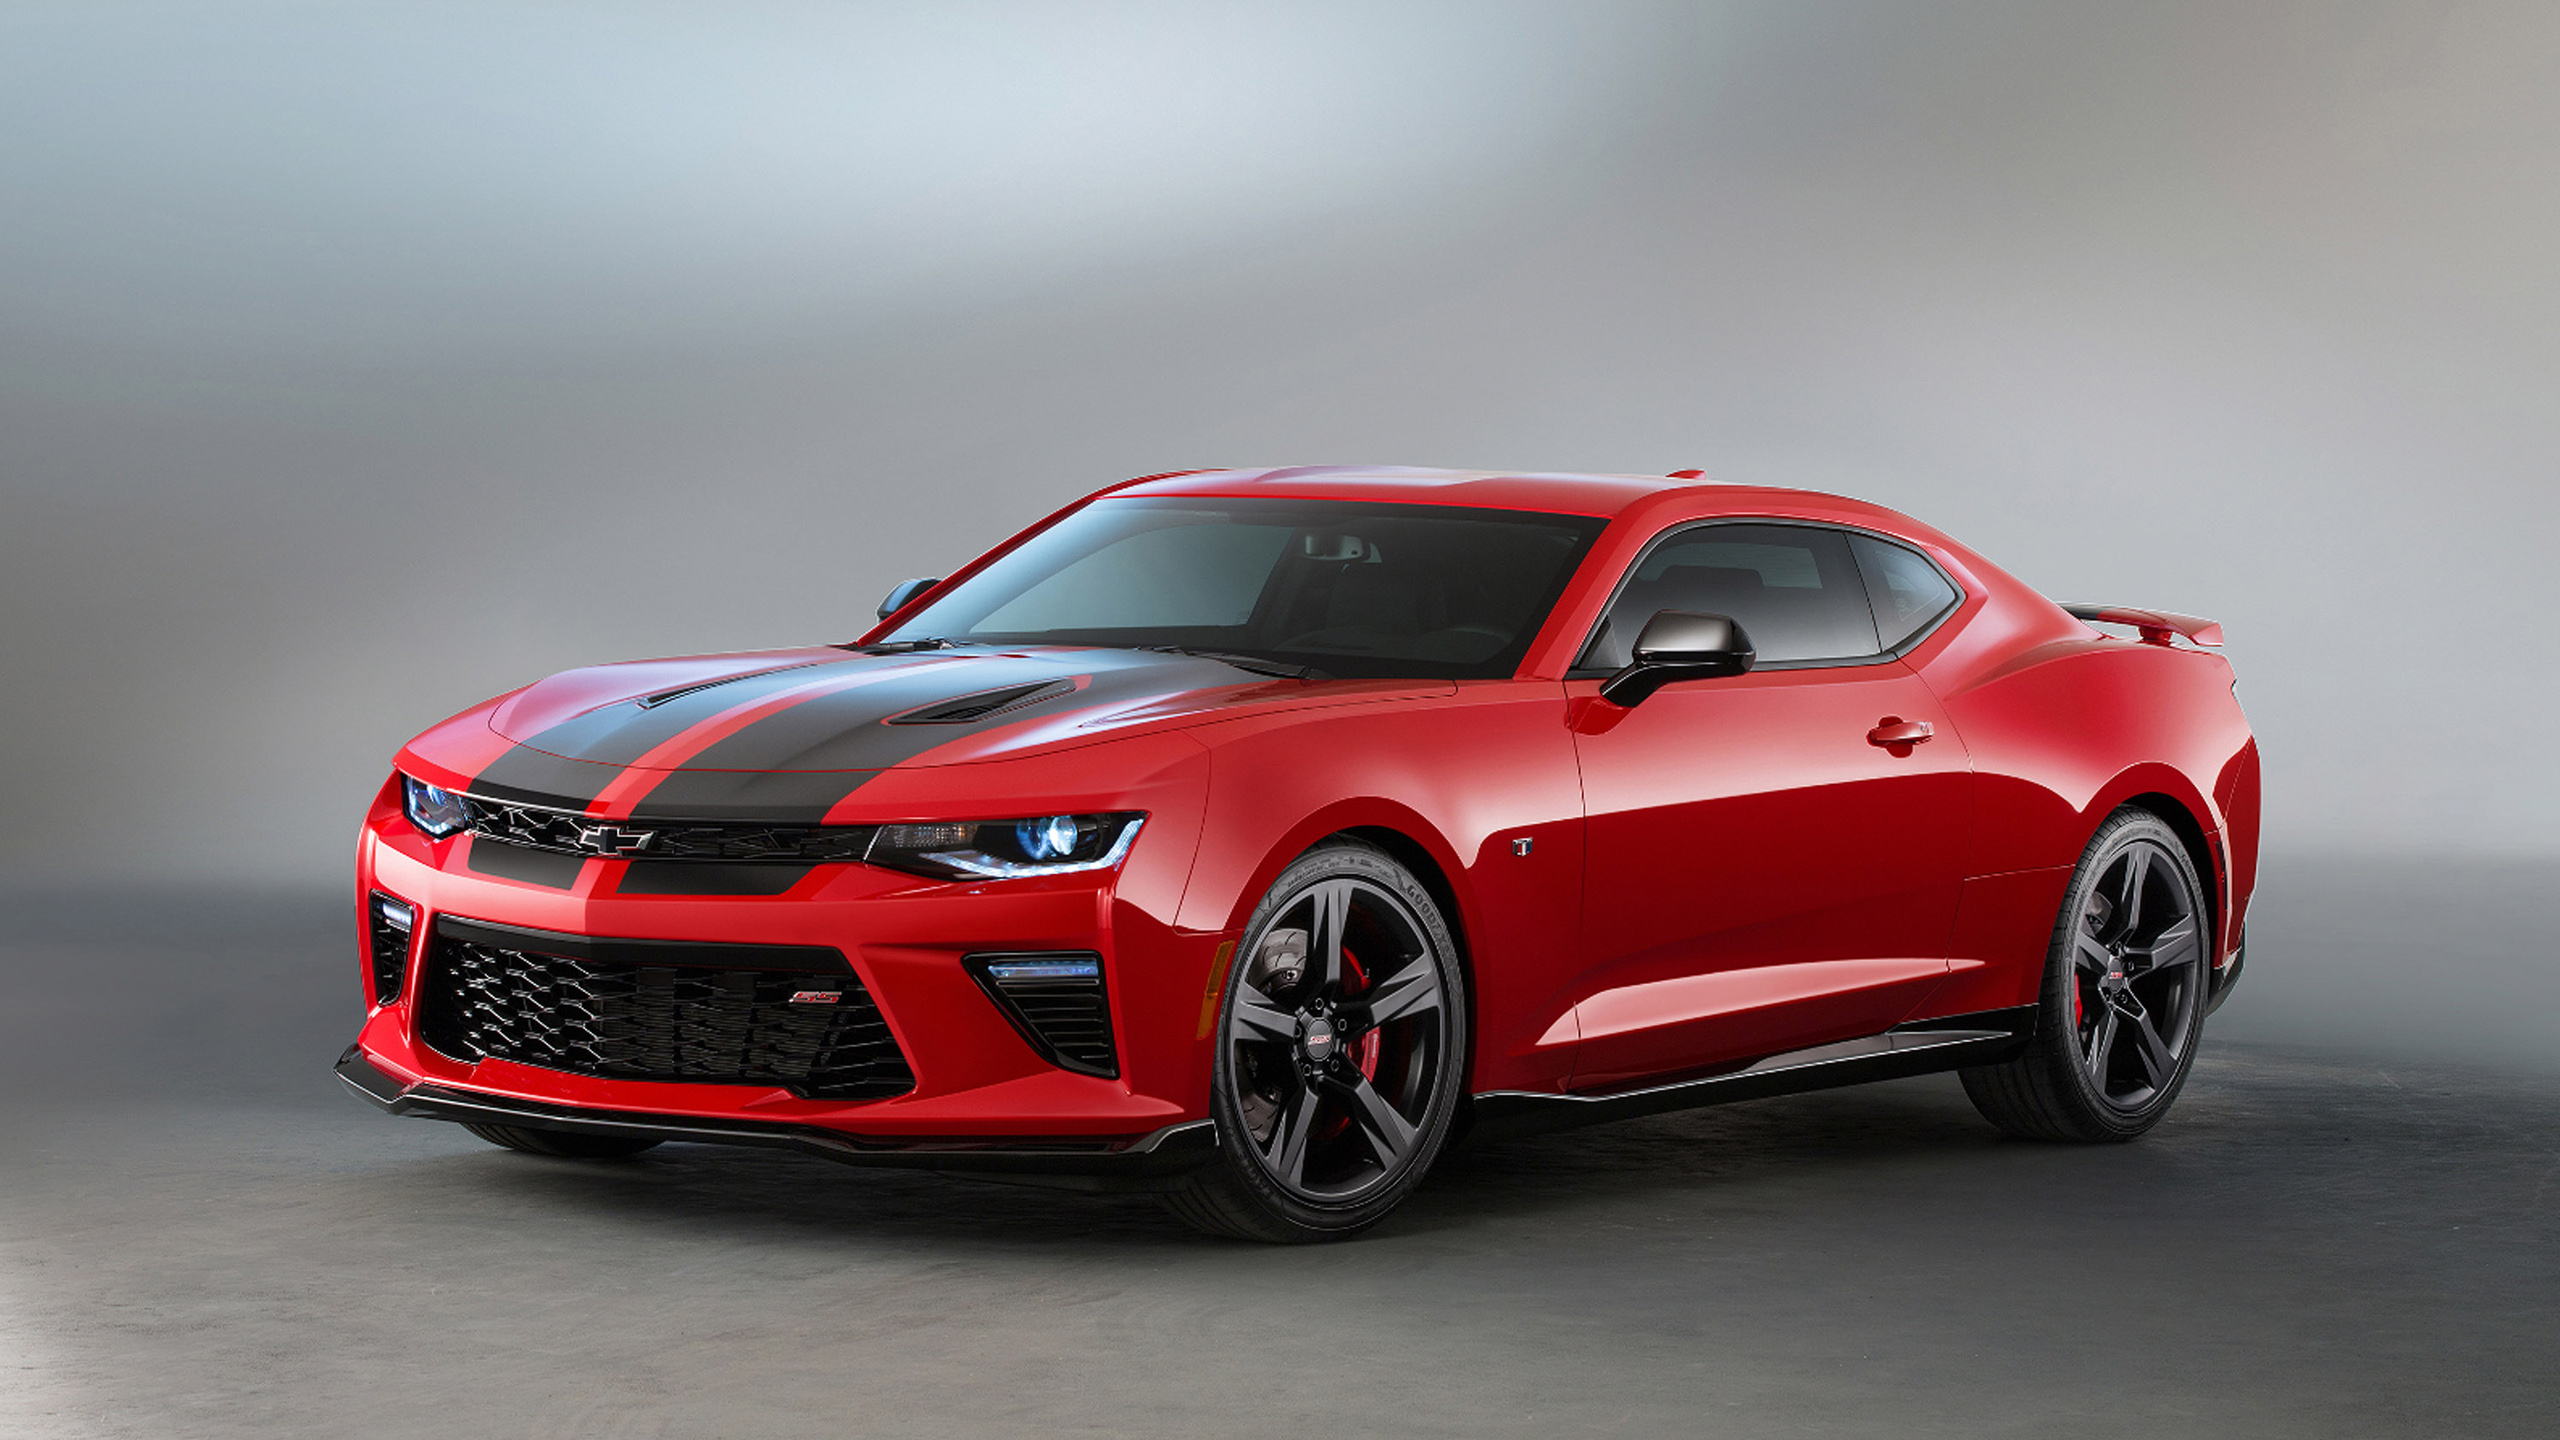 Hellcat 2018 Chevy Camaro >> 2016 Chevrolet Camaro SS Black Accent Package Wallpaper | HD Car Wallpapers | ID #5929